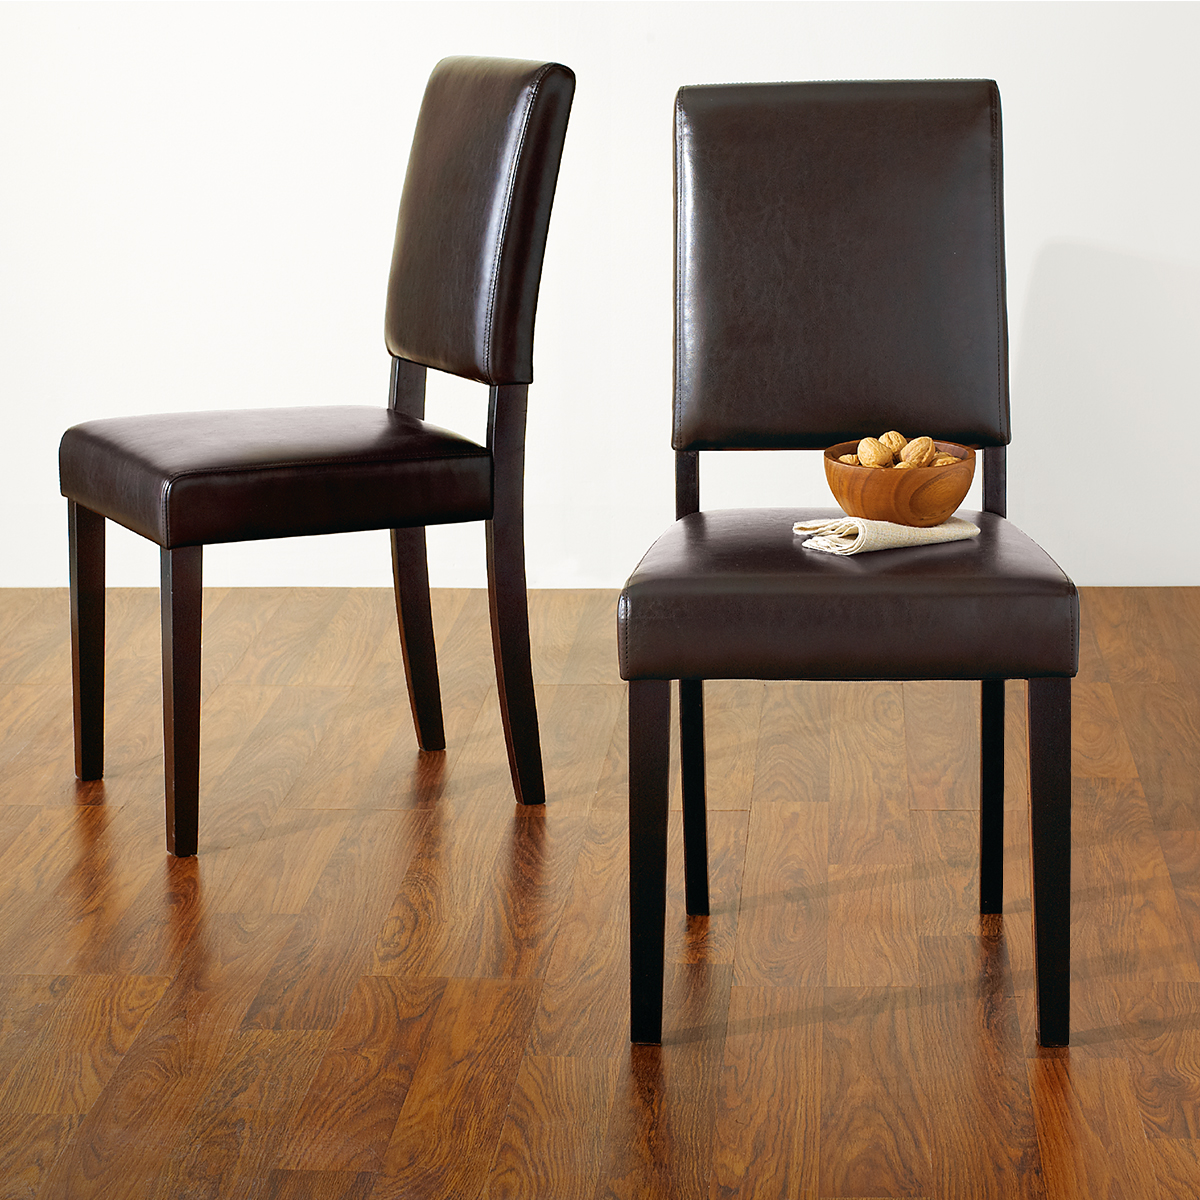 Details About Mid Century Modern Dining Chair Faux Leather Parson Chairs Set Of 2